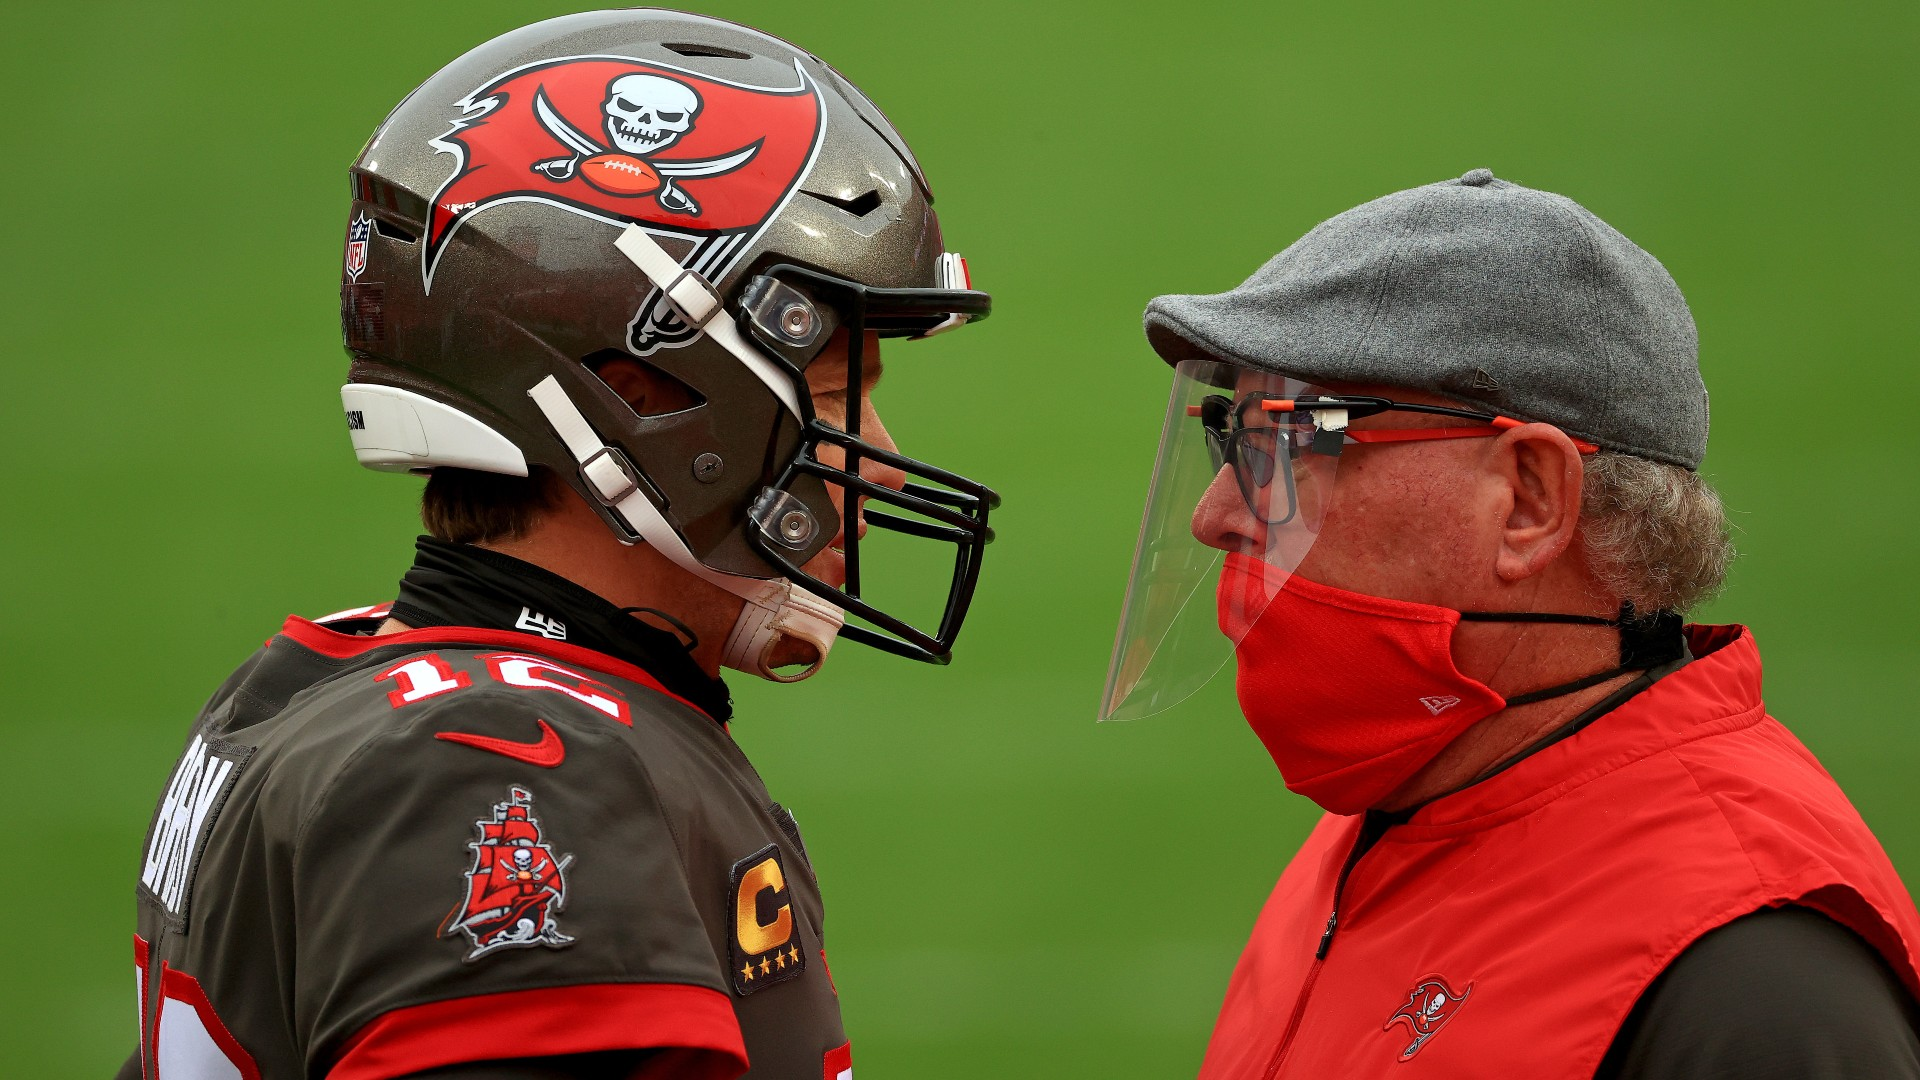 Tom Brady, Bruce Arians overcame early rough patches to get Buccaneers to Super Bowl 55